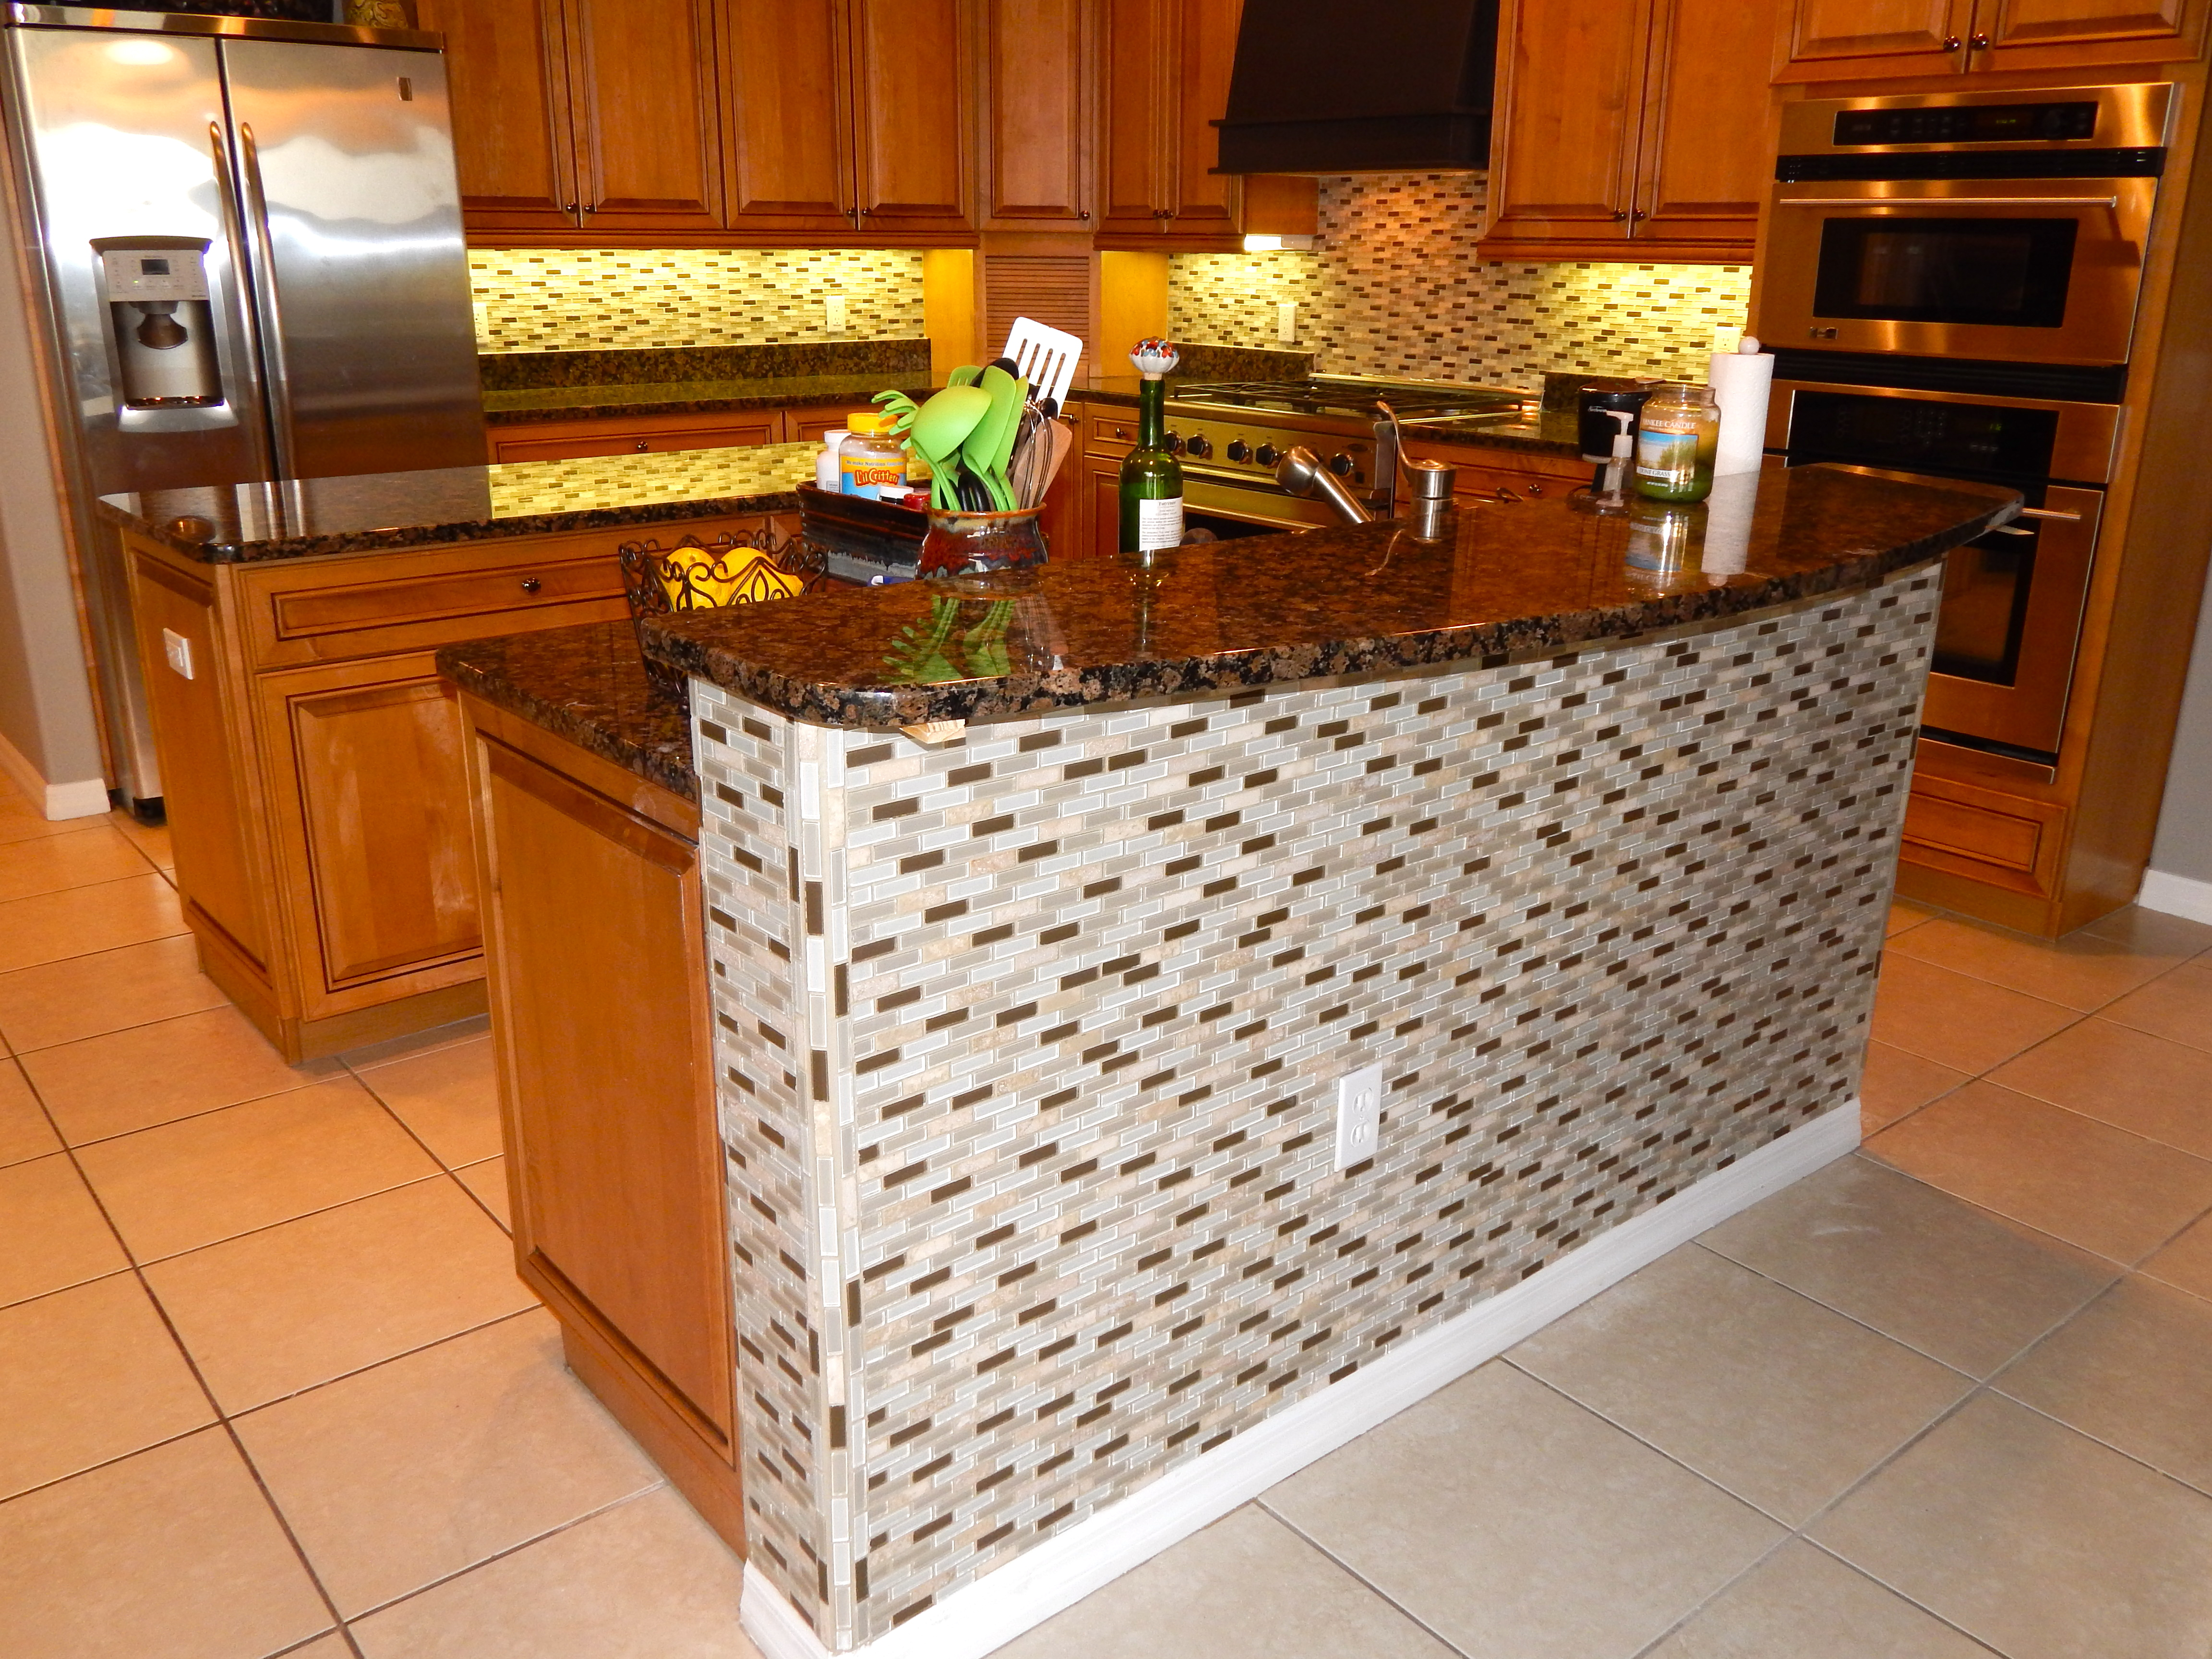 Noe Kitchen and bar backsplash